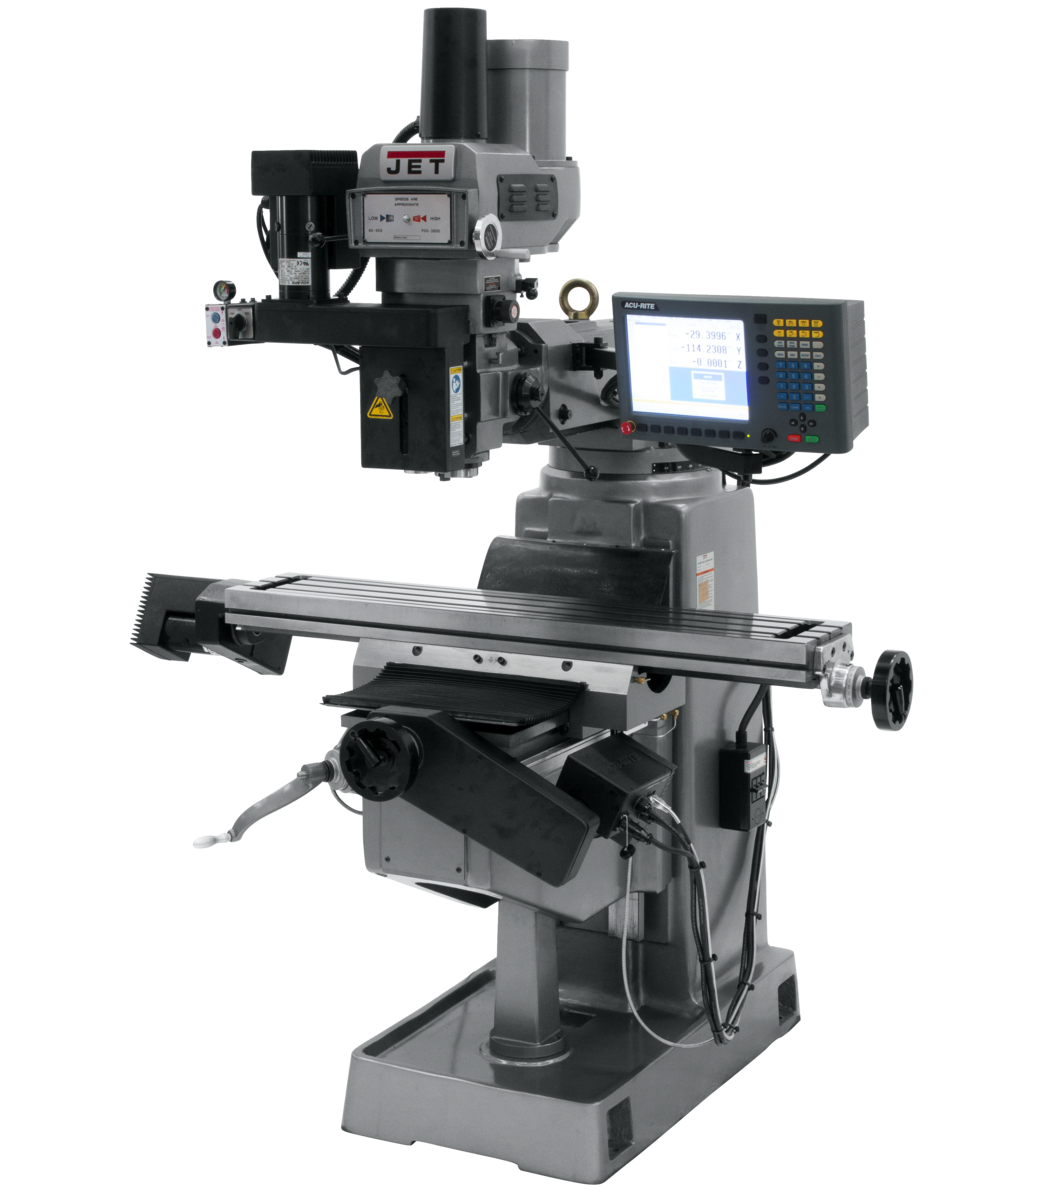 JTM-949EVS/230 Mill With 2-Axis ACU-RITE G-2 MILLPWR CNC